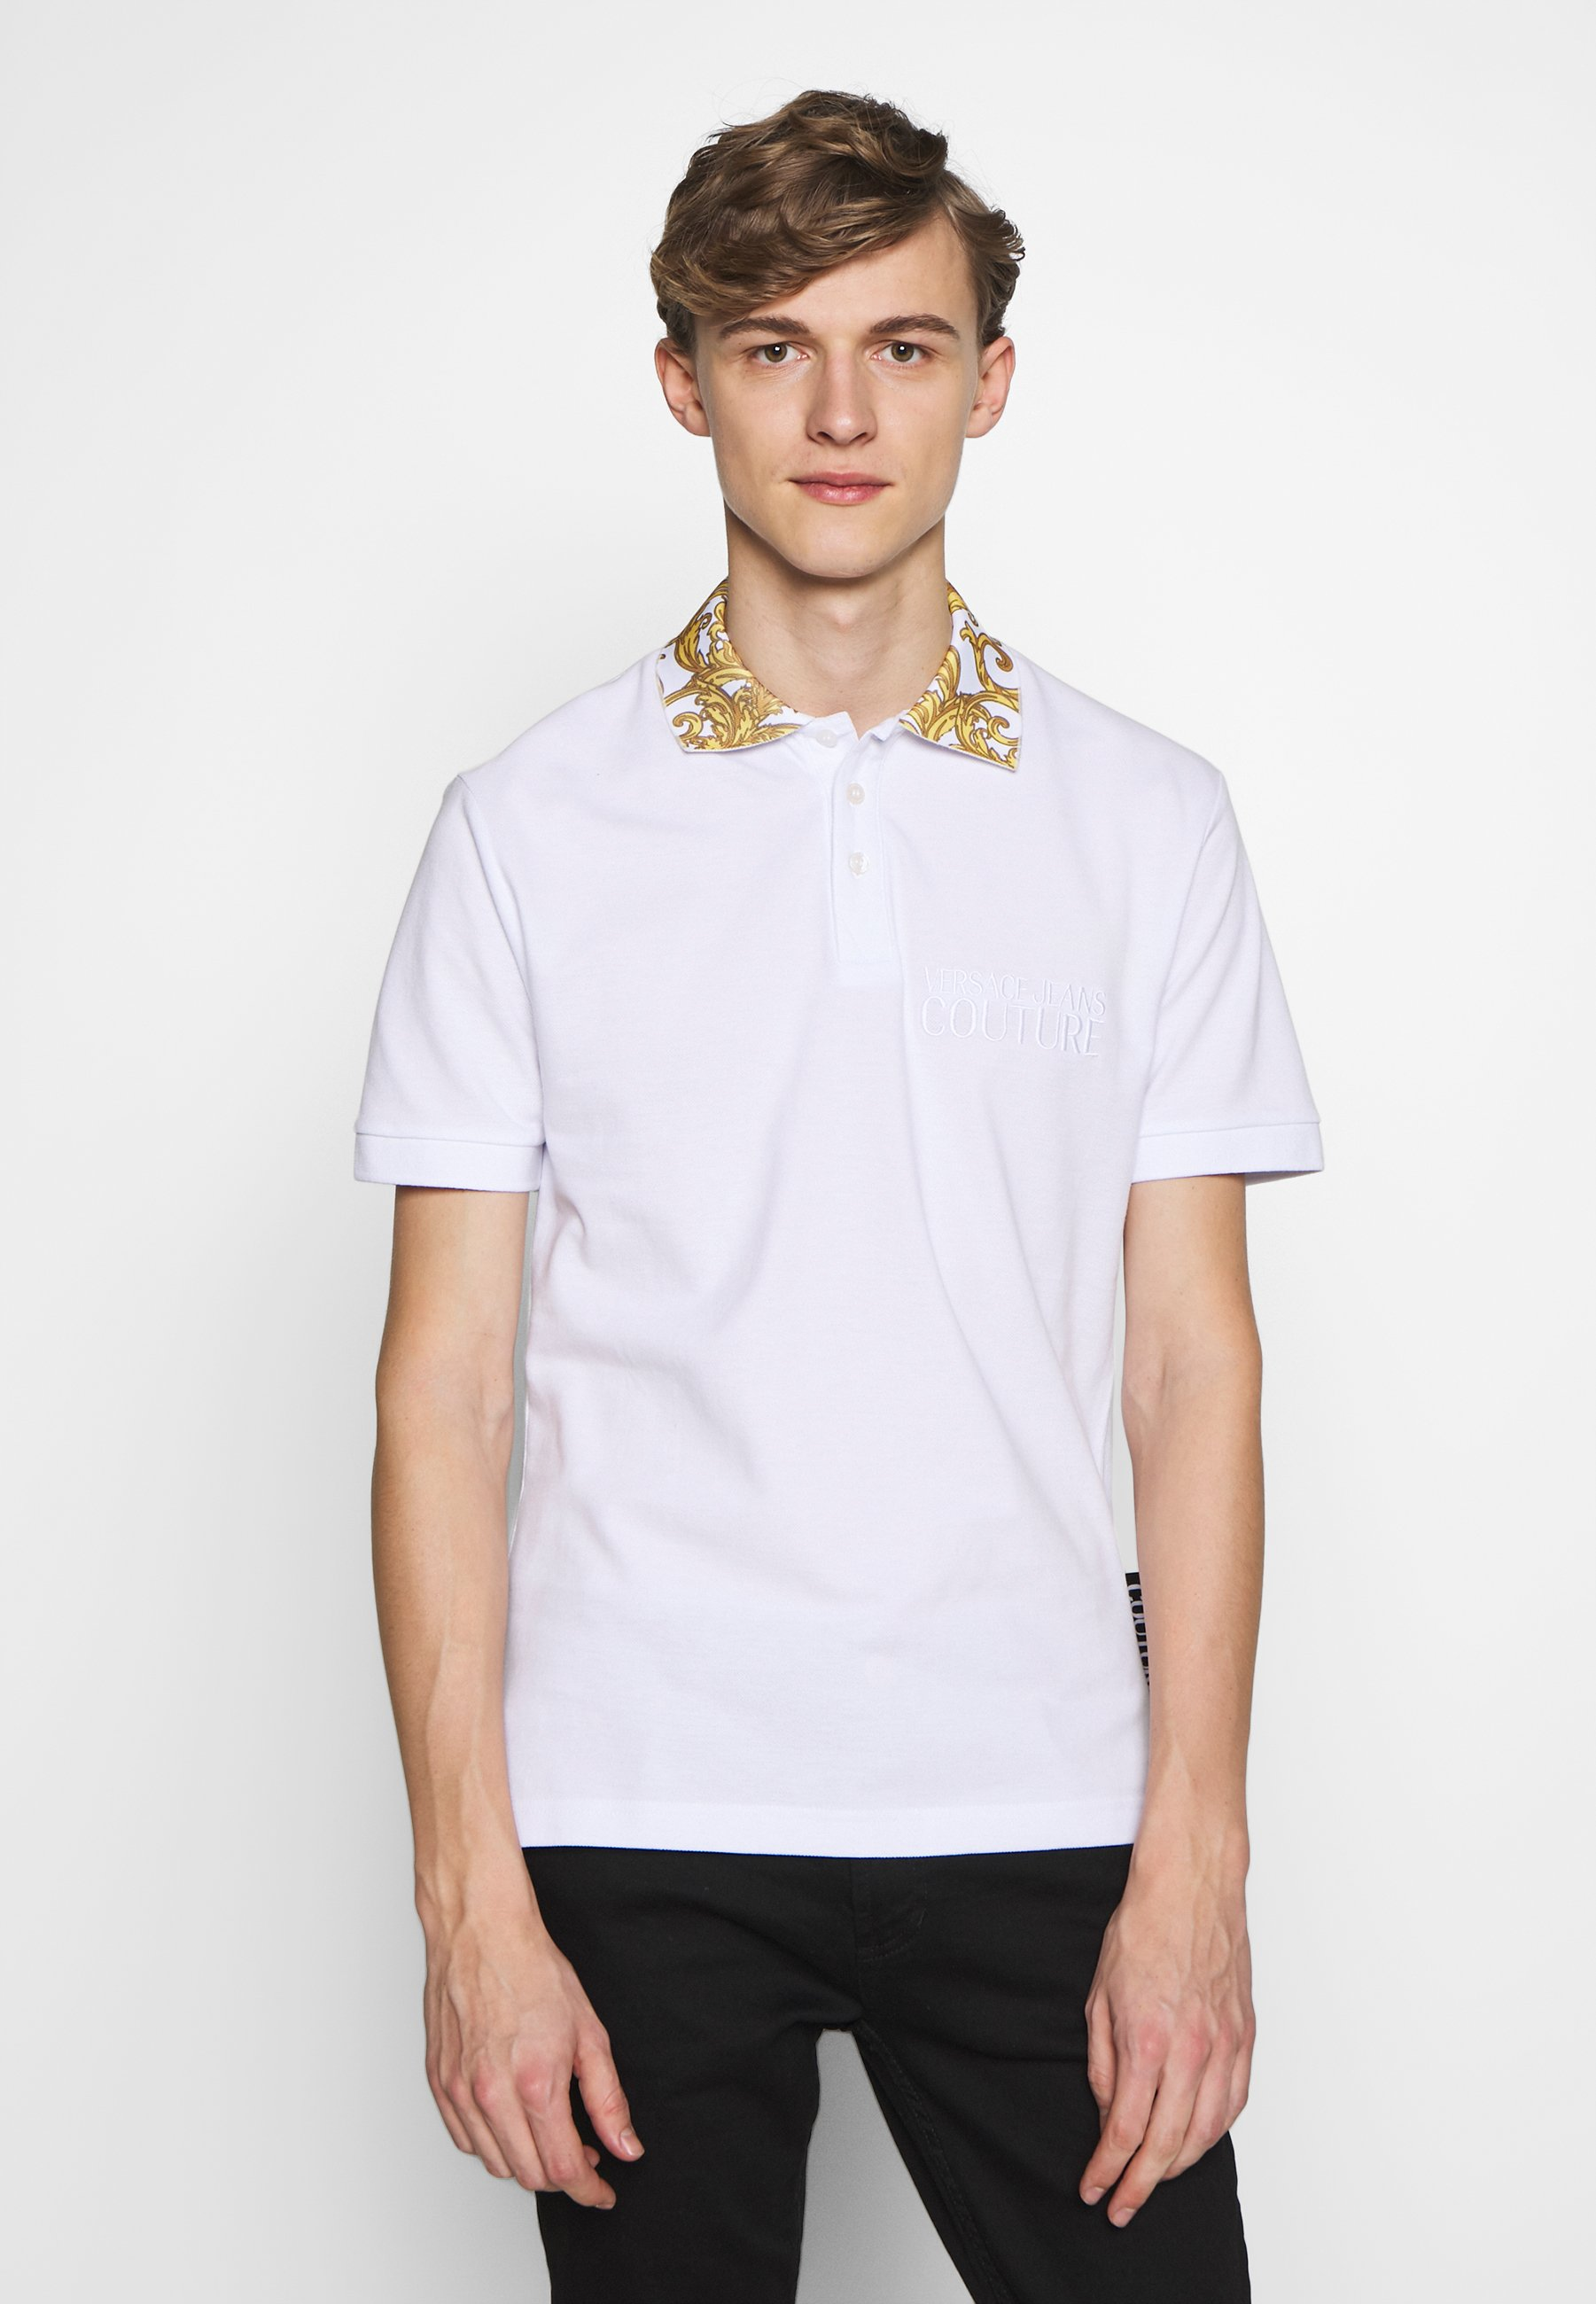 Versace Jeans Couture Baroque Collar Without The Patch - Poloskjorter White